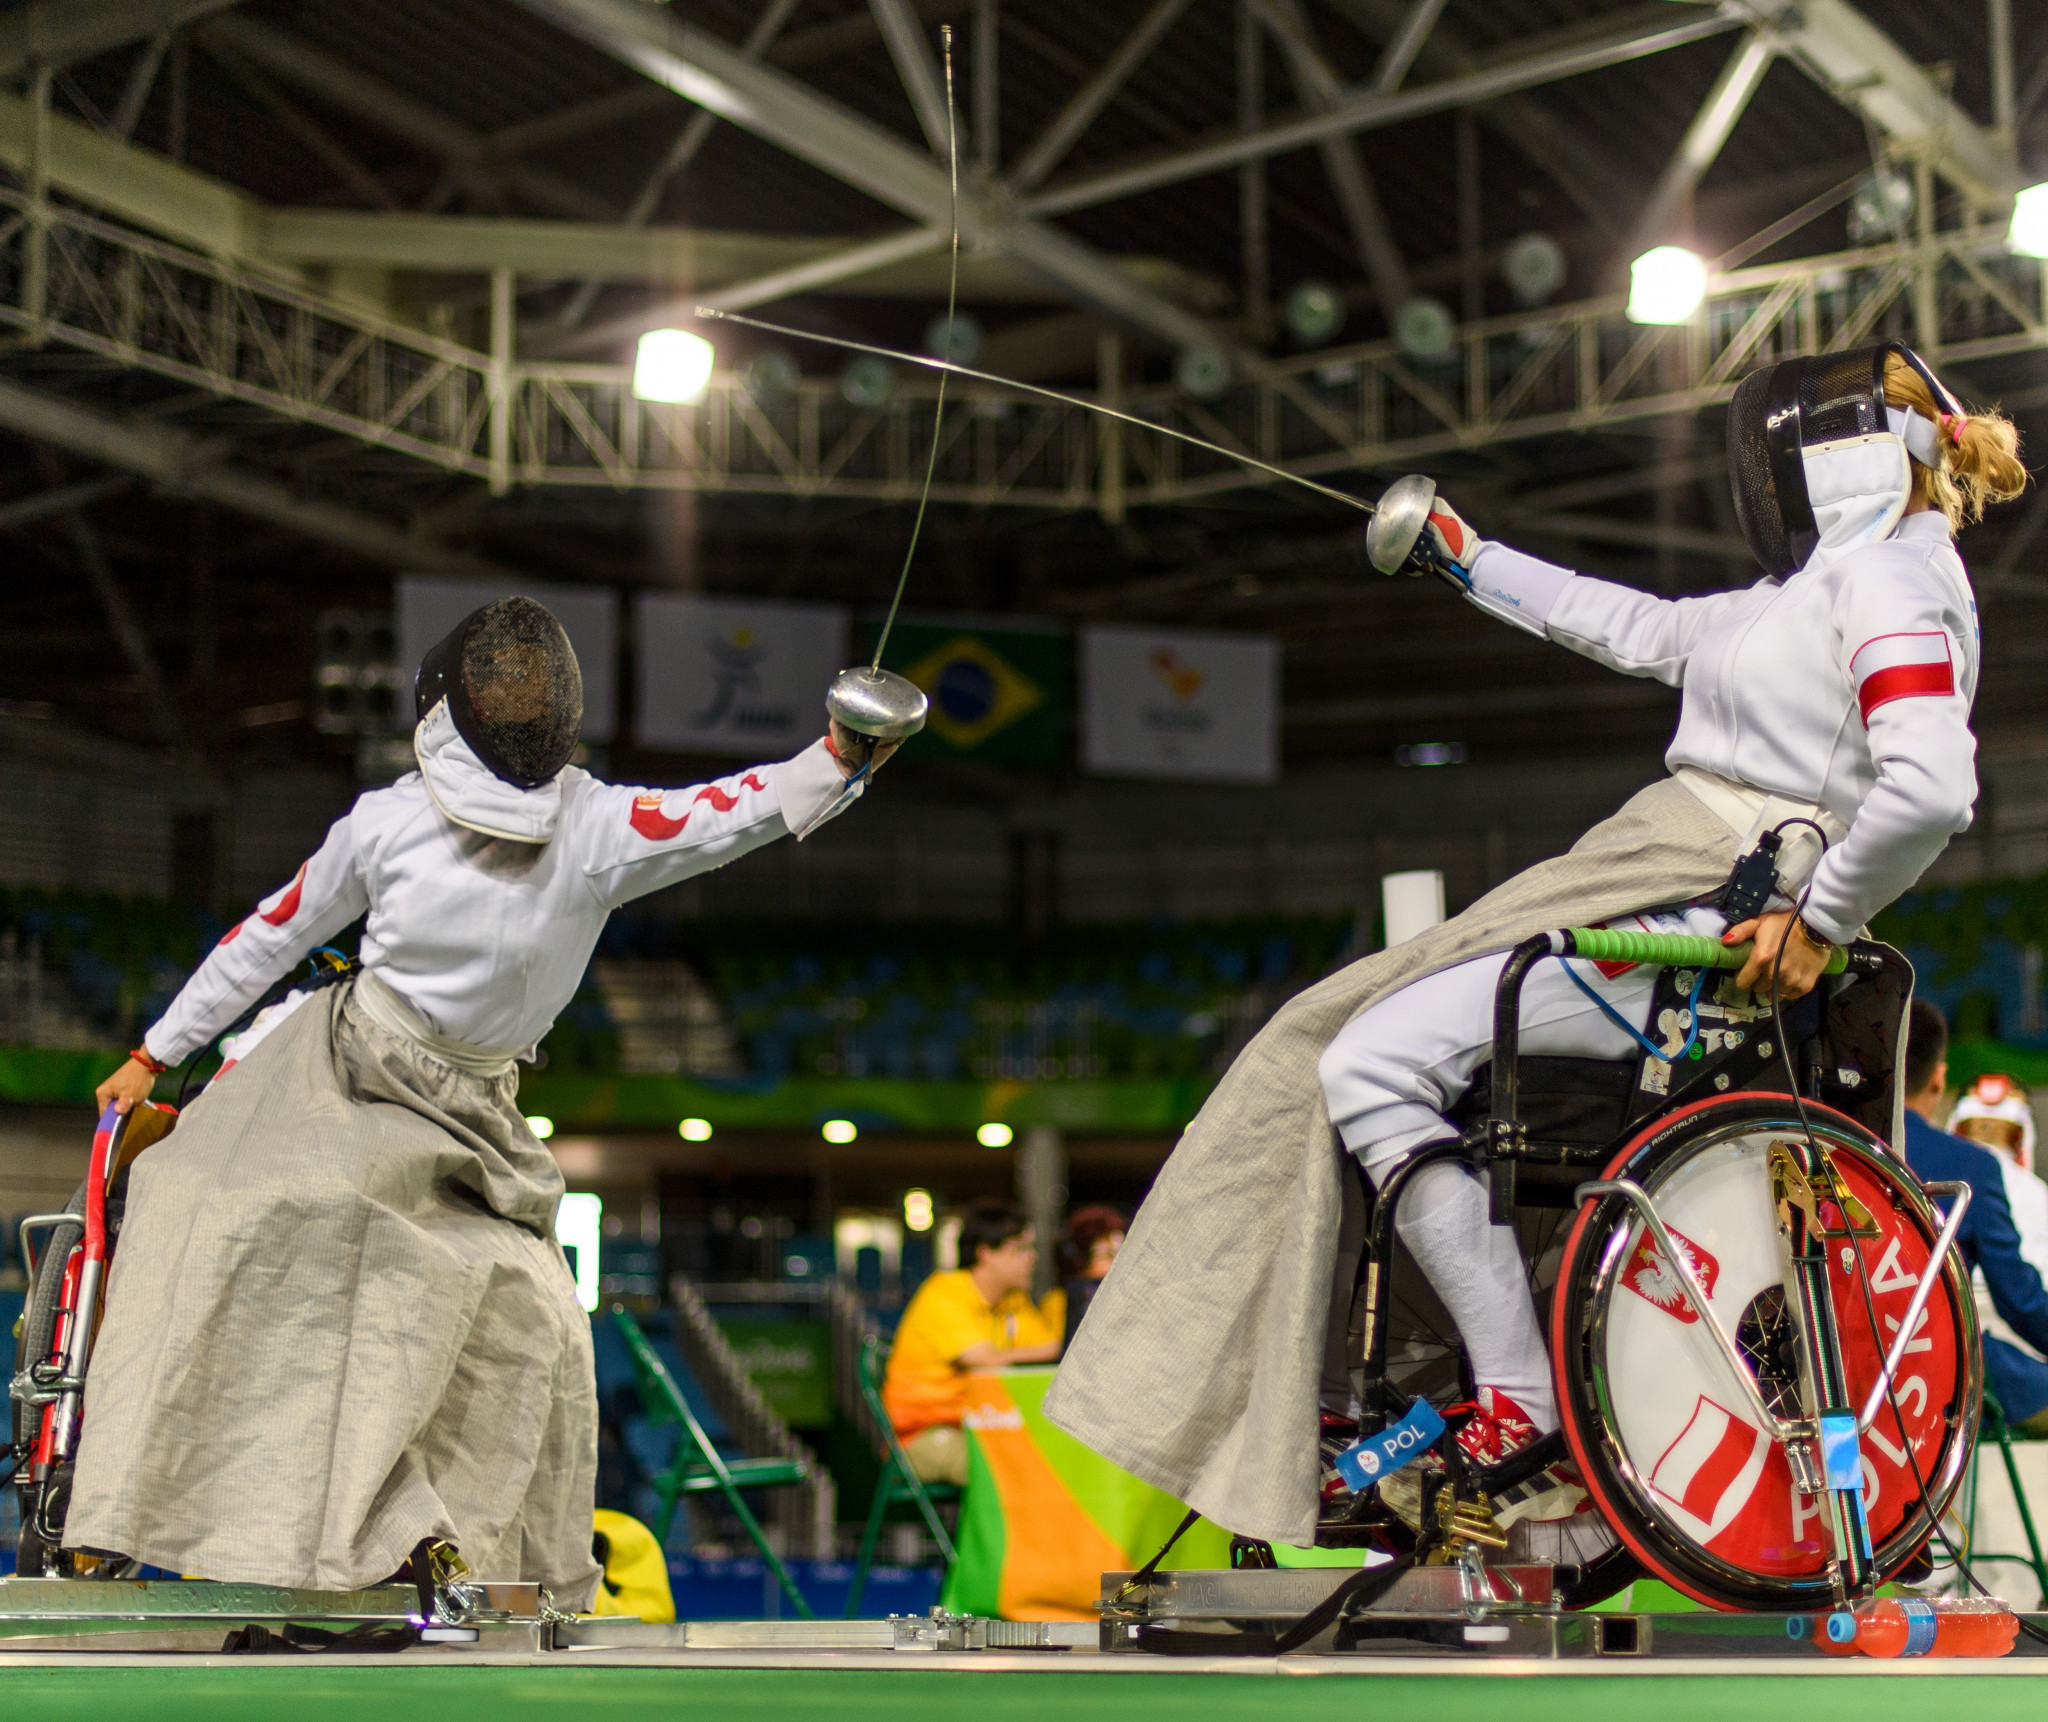 Warsaw has been a regular destination for major wheelchair fencing events ©Getty Images